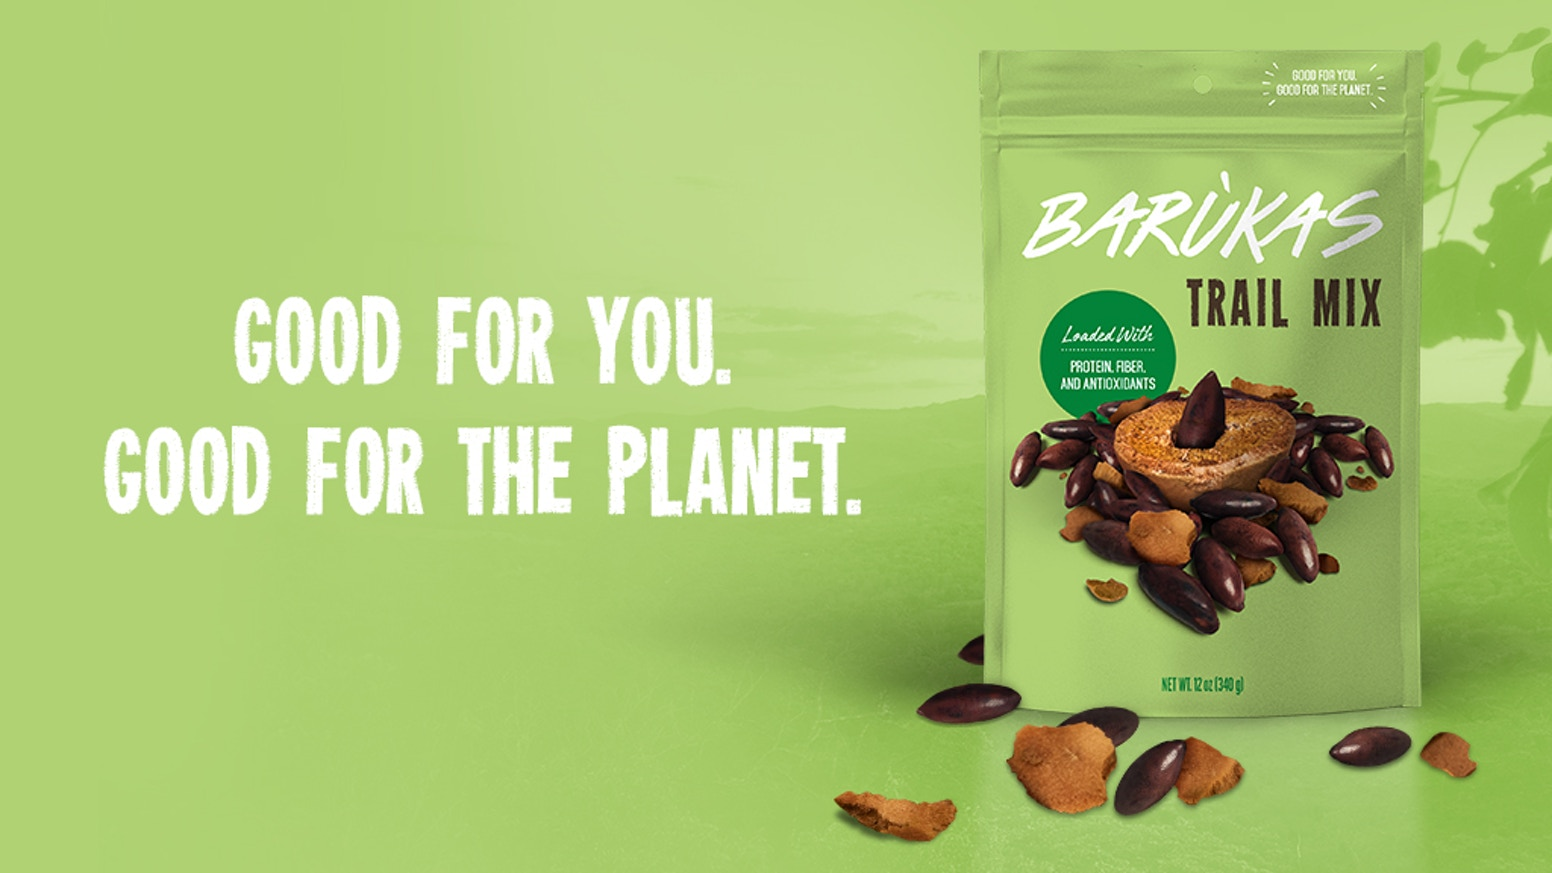 Discover a delicious new South American superfood that's good for you and the planet. We're planting a tree for every 5 bags ordered.